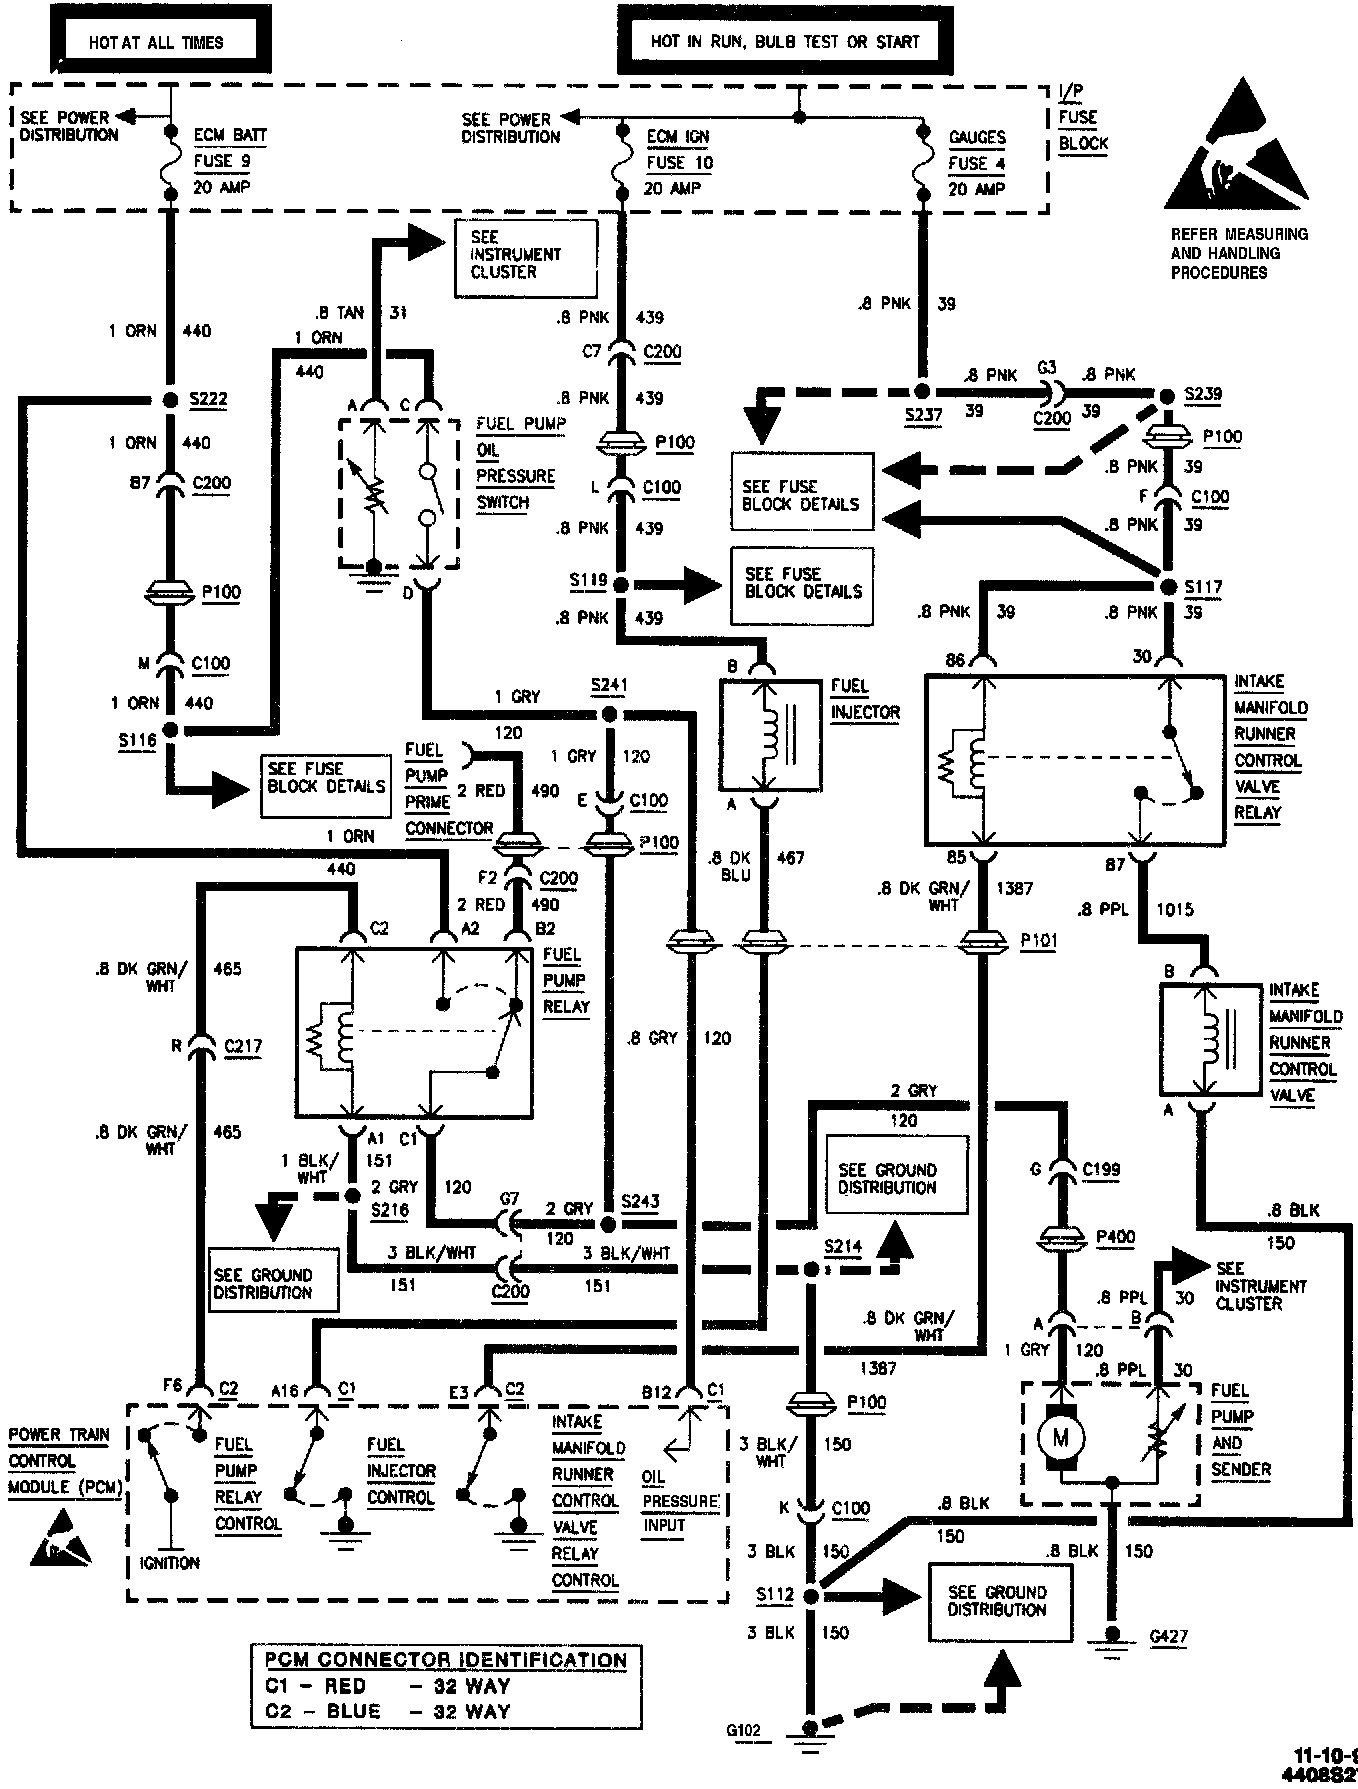 Free Download Schematic Diagram Akai Lct2701 Wiring Drawing Software H6677 Citizen Library Rh 30 Desa Penago1 Com